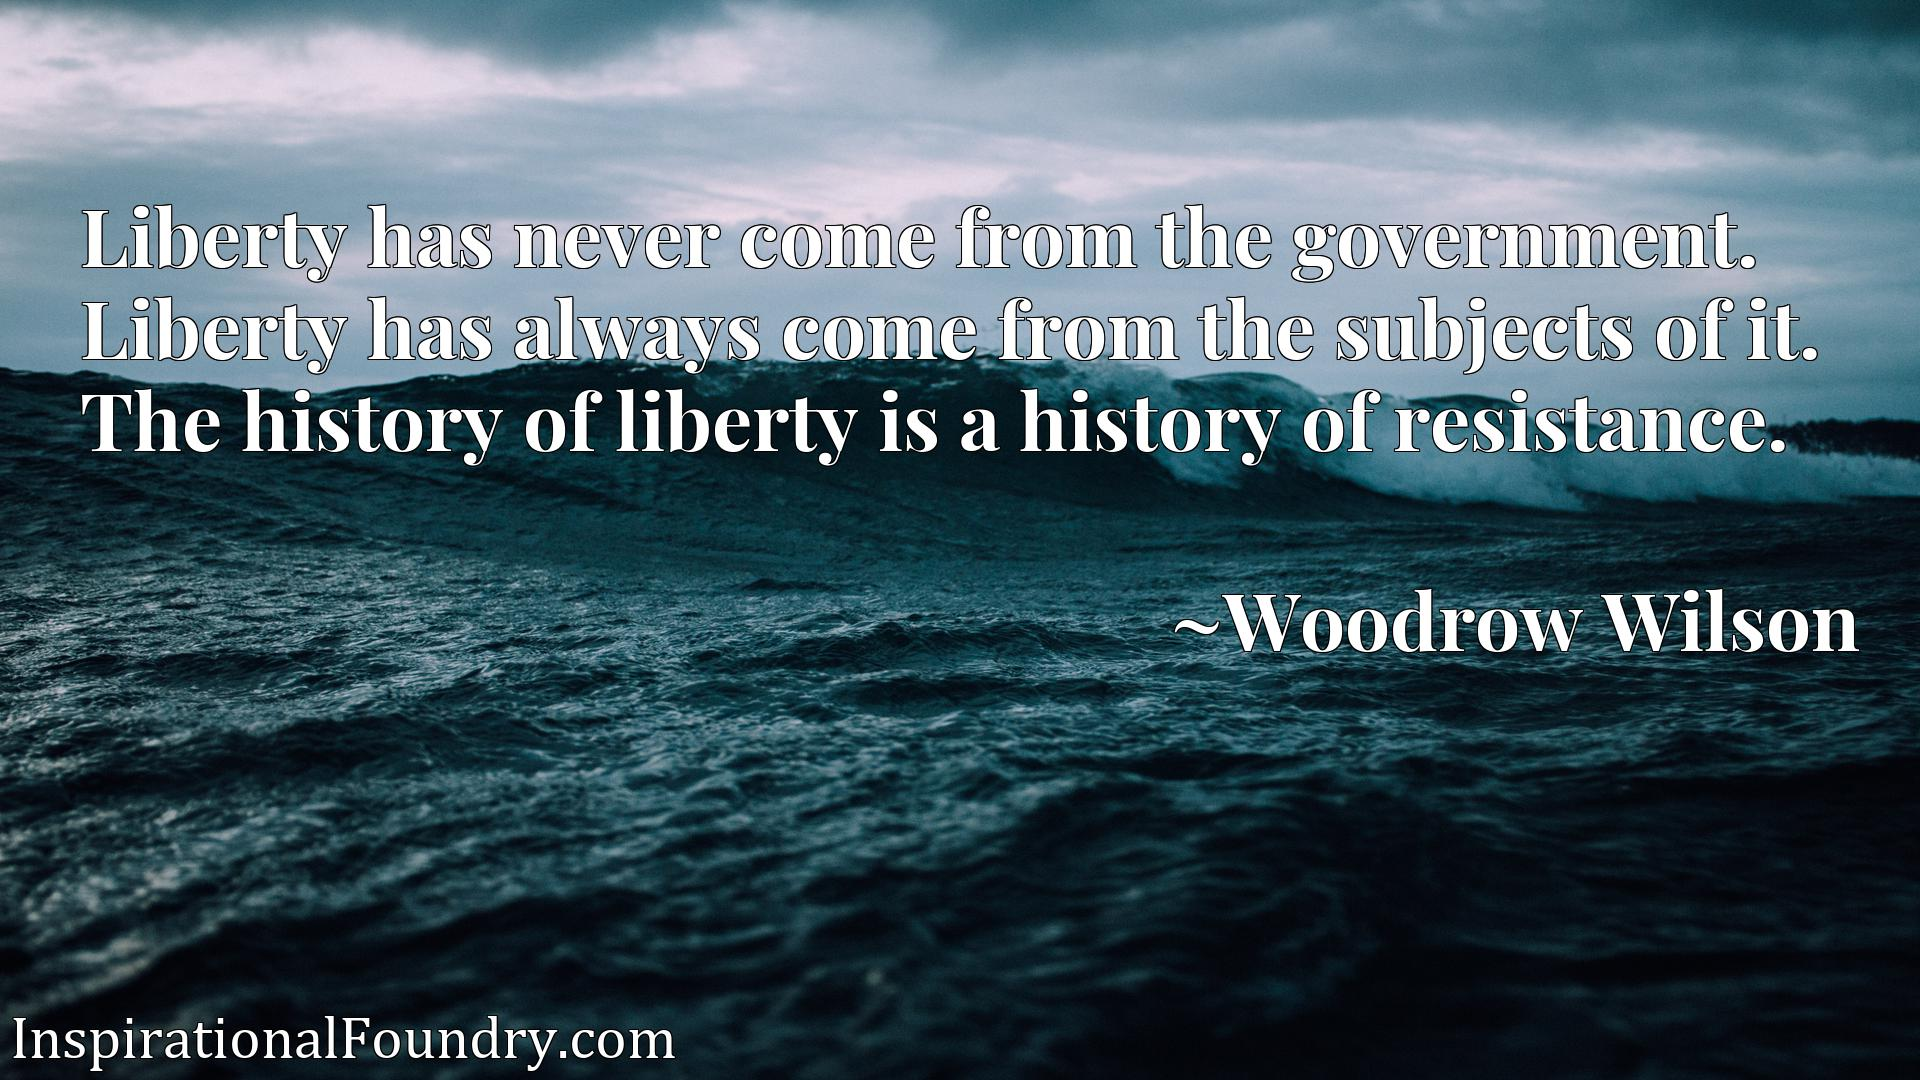 Liberty has never come from the government. Liberty has always come from the subjects of it. The history of liberty is a history of resistance.